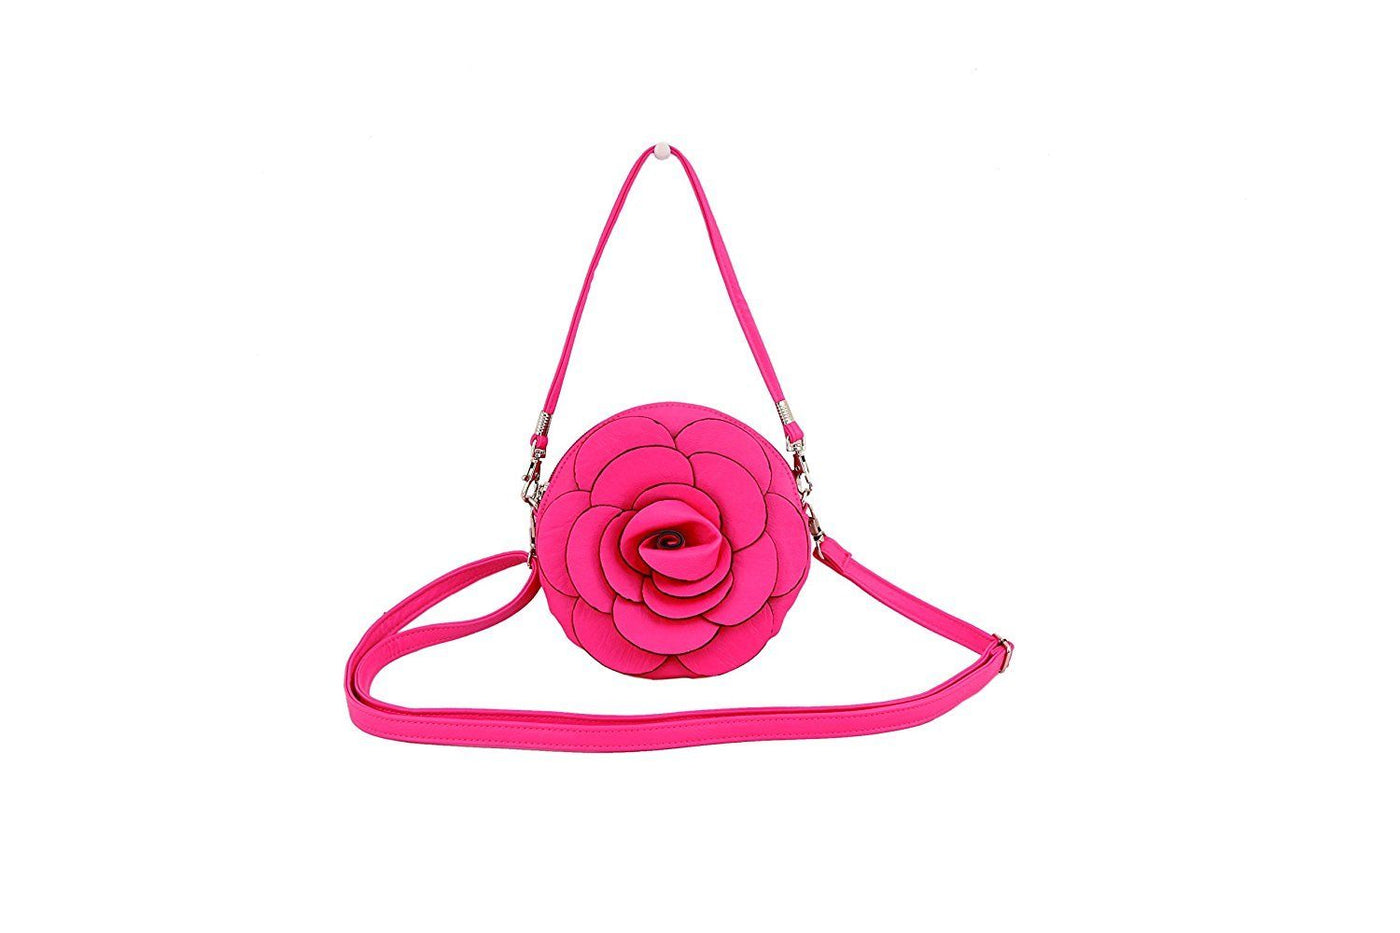 Youngs Victoria Leland Designs Hot Pink Flower Cross Body Wristlet